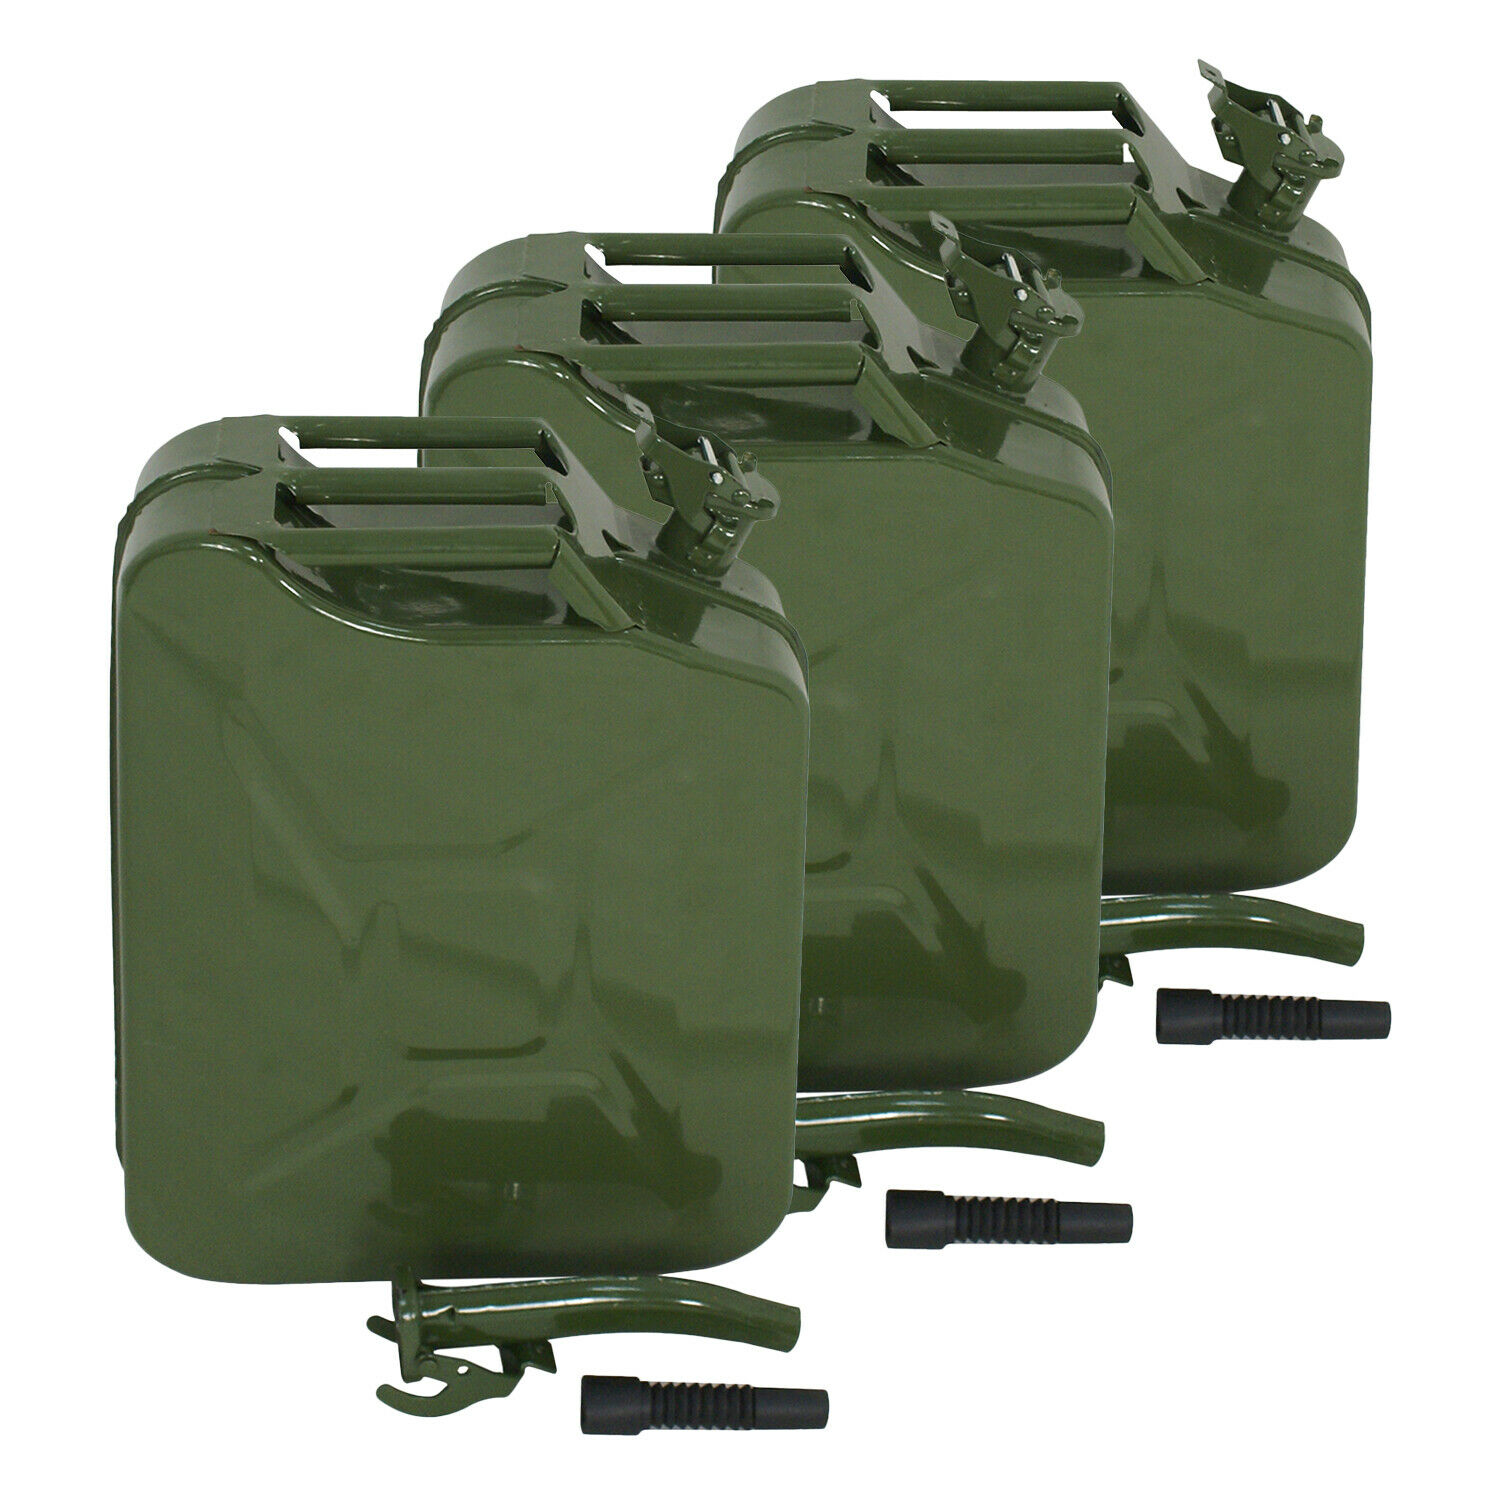 3X Jerry Can 5 Gallon 20L Gas Gasoline Fuel Army Army Backup Metal Steel Tank Business & Industrial